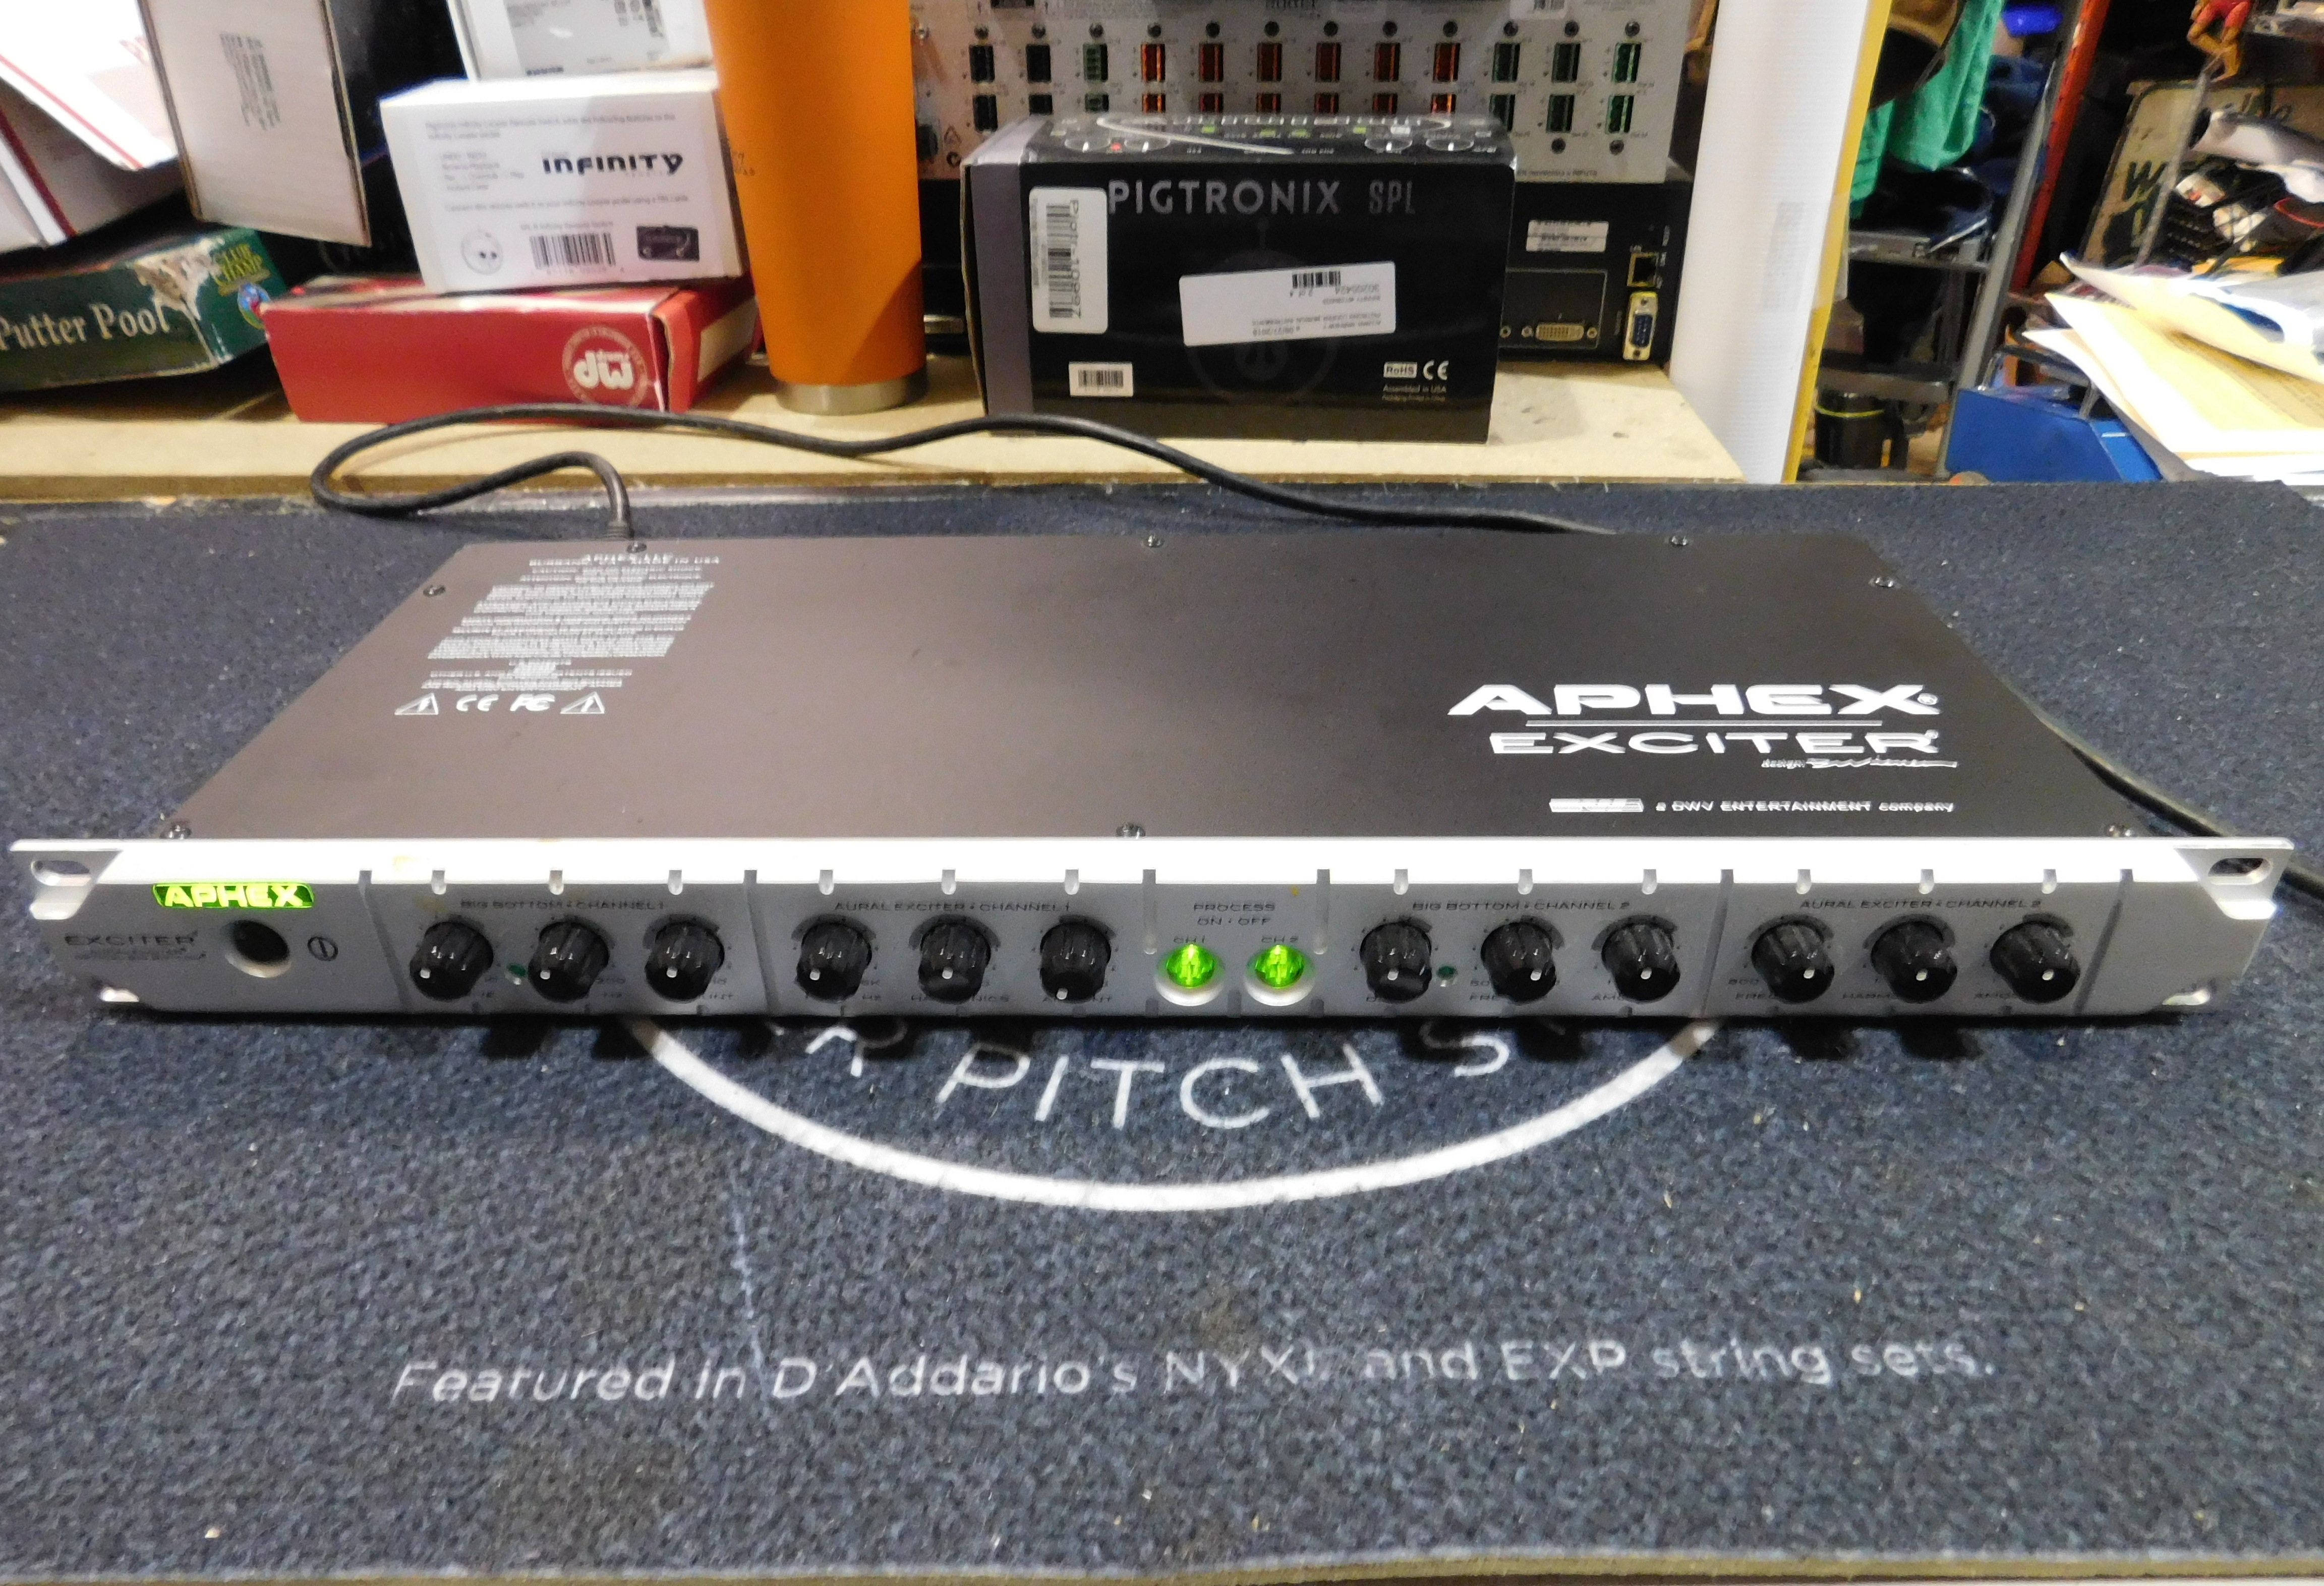 APHEX 204 EXCITER 2-Channel Aural Exciter with Optical Big Bottom Rackmount